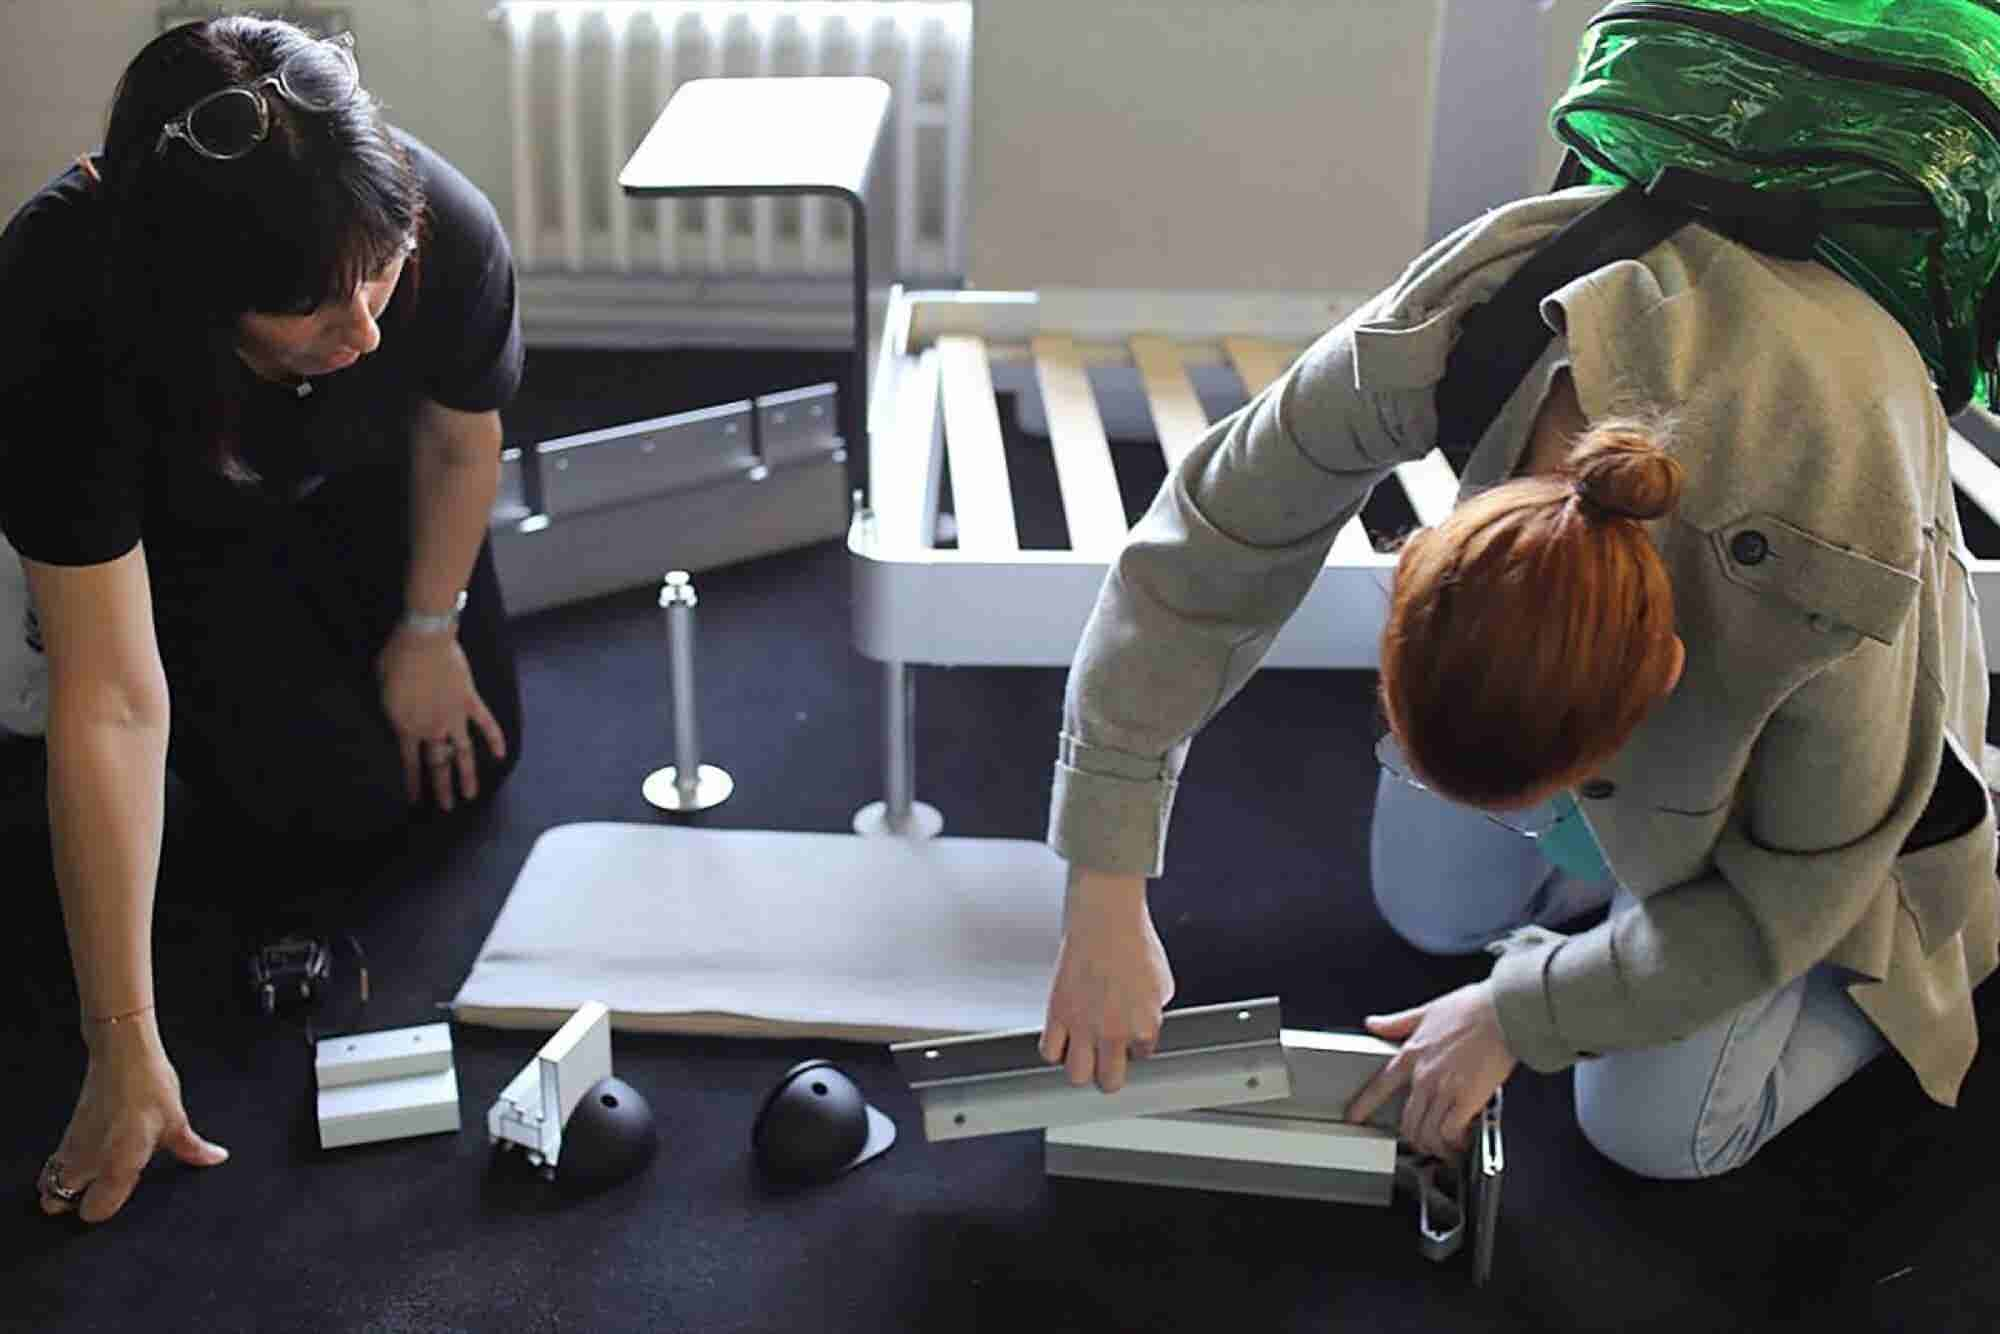 IKEA's 'Open Platform' Embraces Furniture Hacking